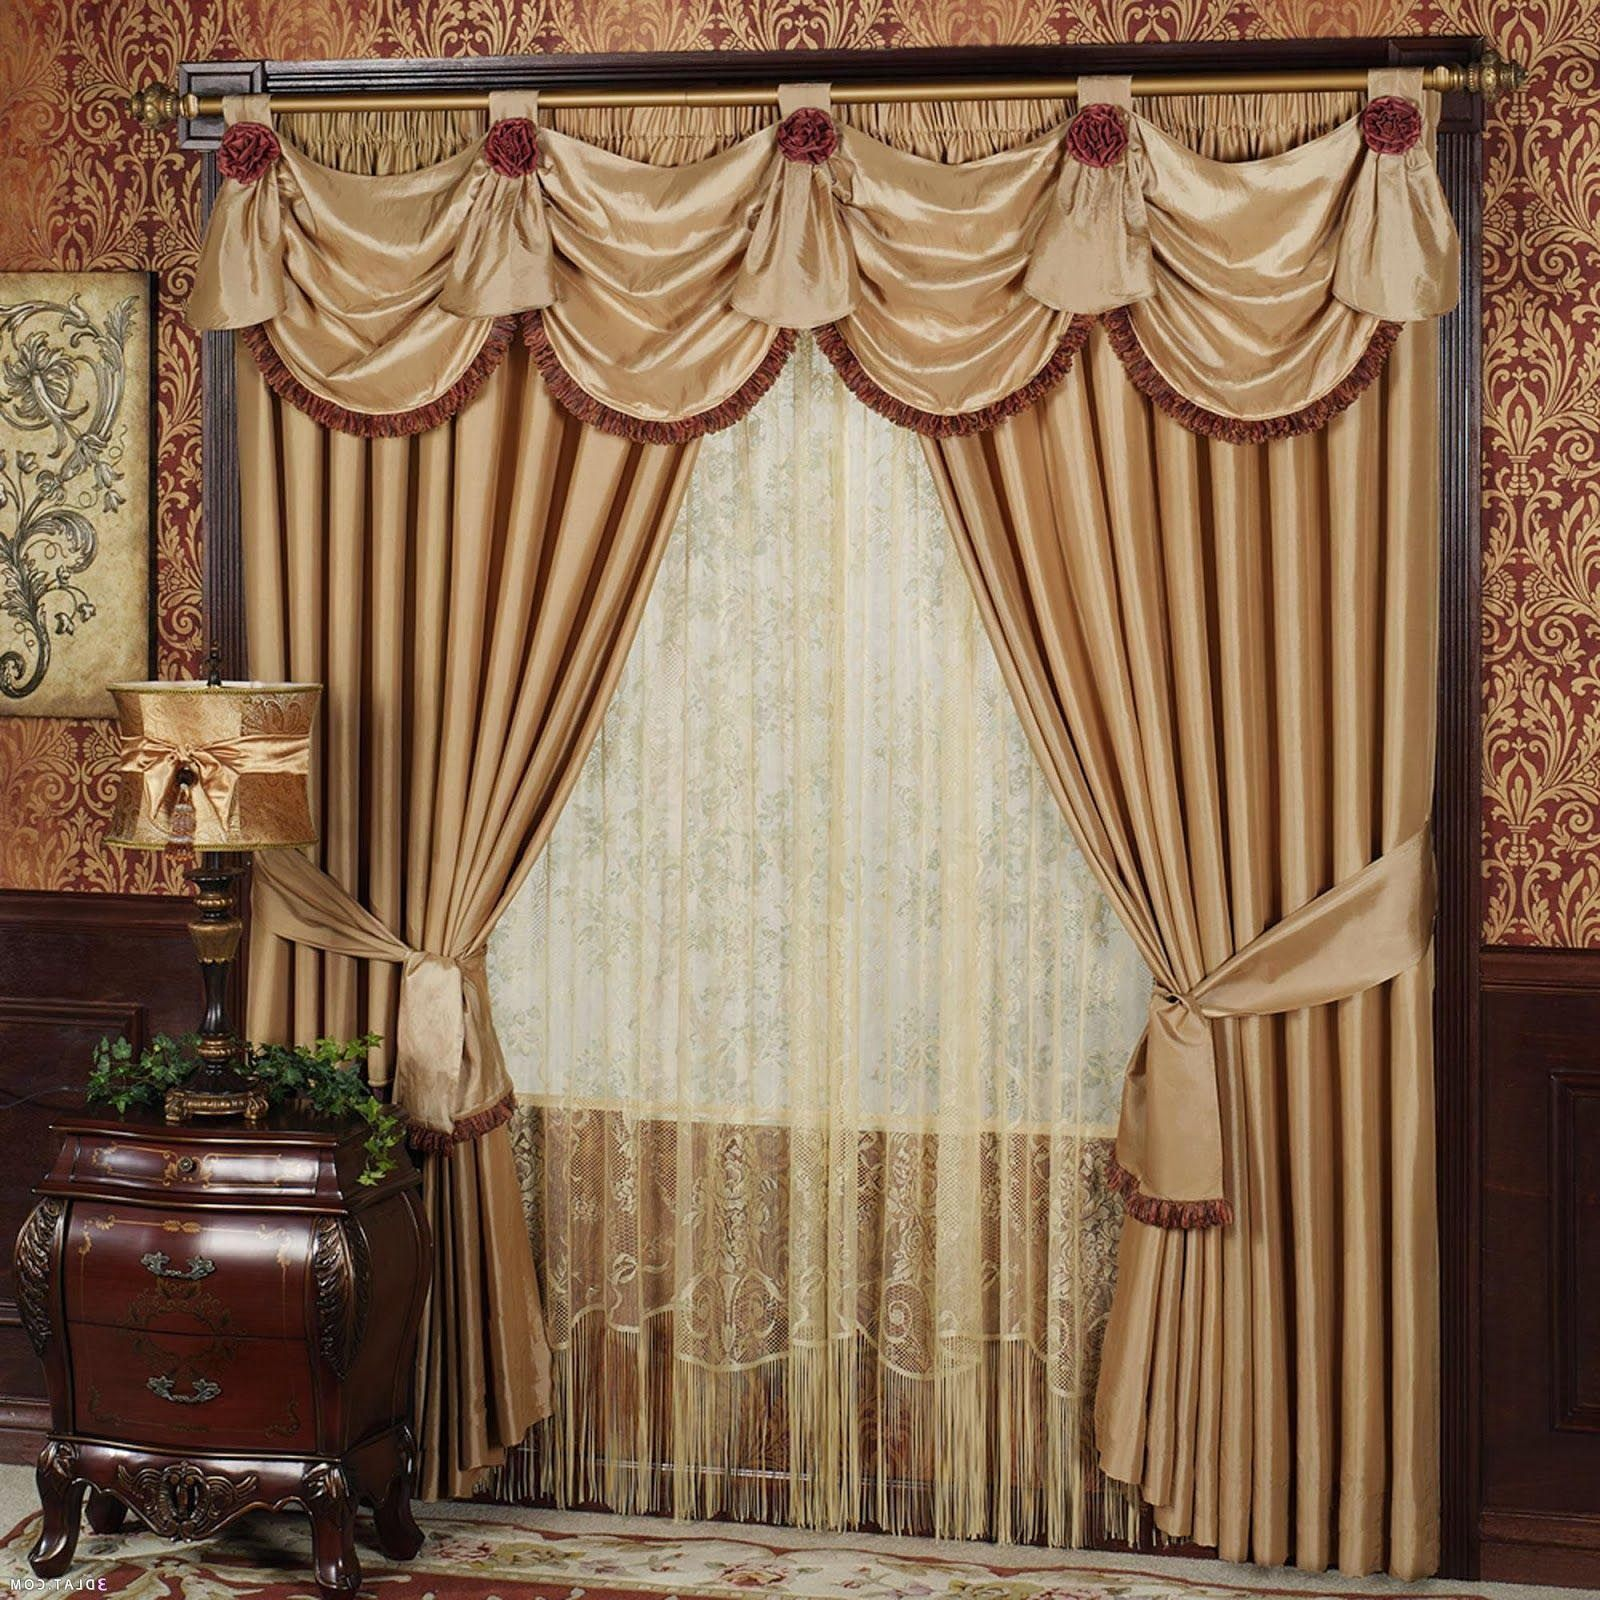 schedule valances service complimentary with home transitionsdraperytransitionsdrapery customized valance in consultation us your to drapes custom discuss additions living drapery contact initial today room